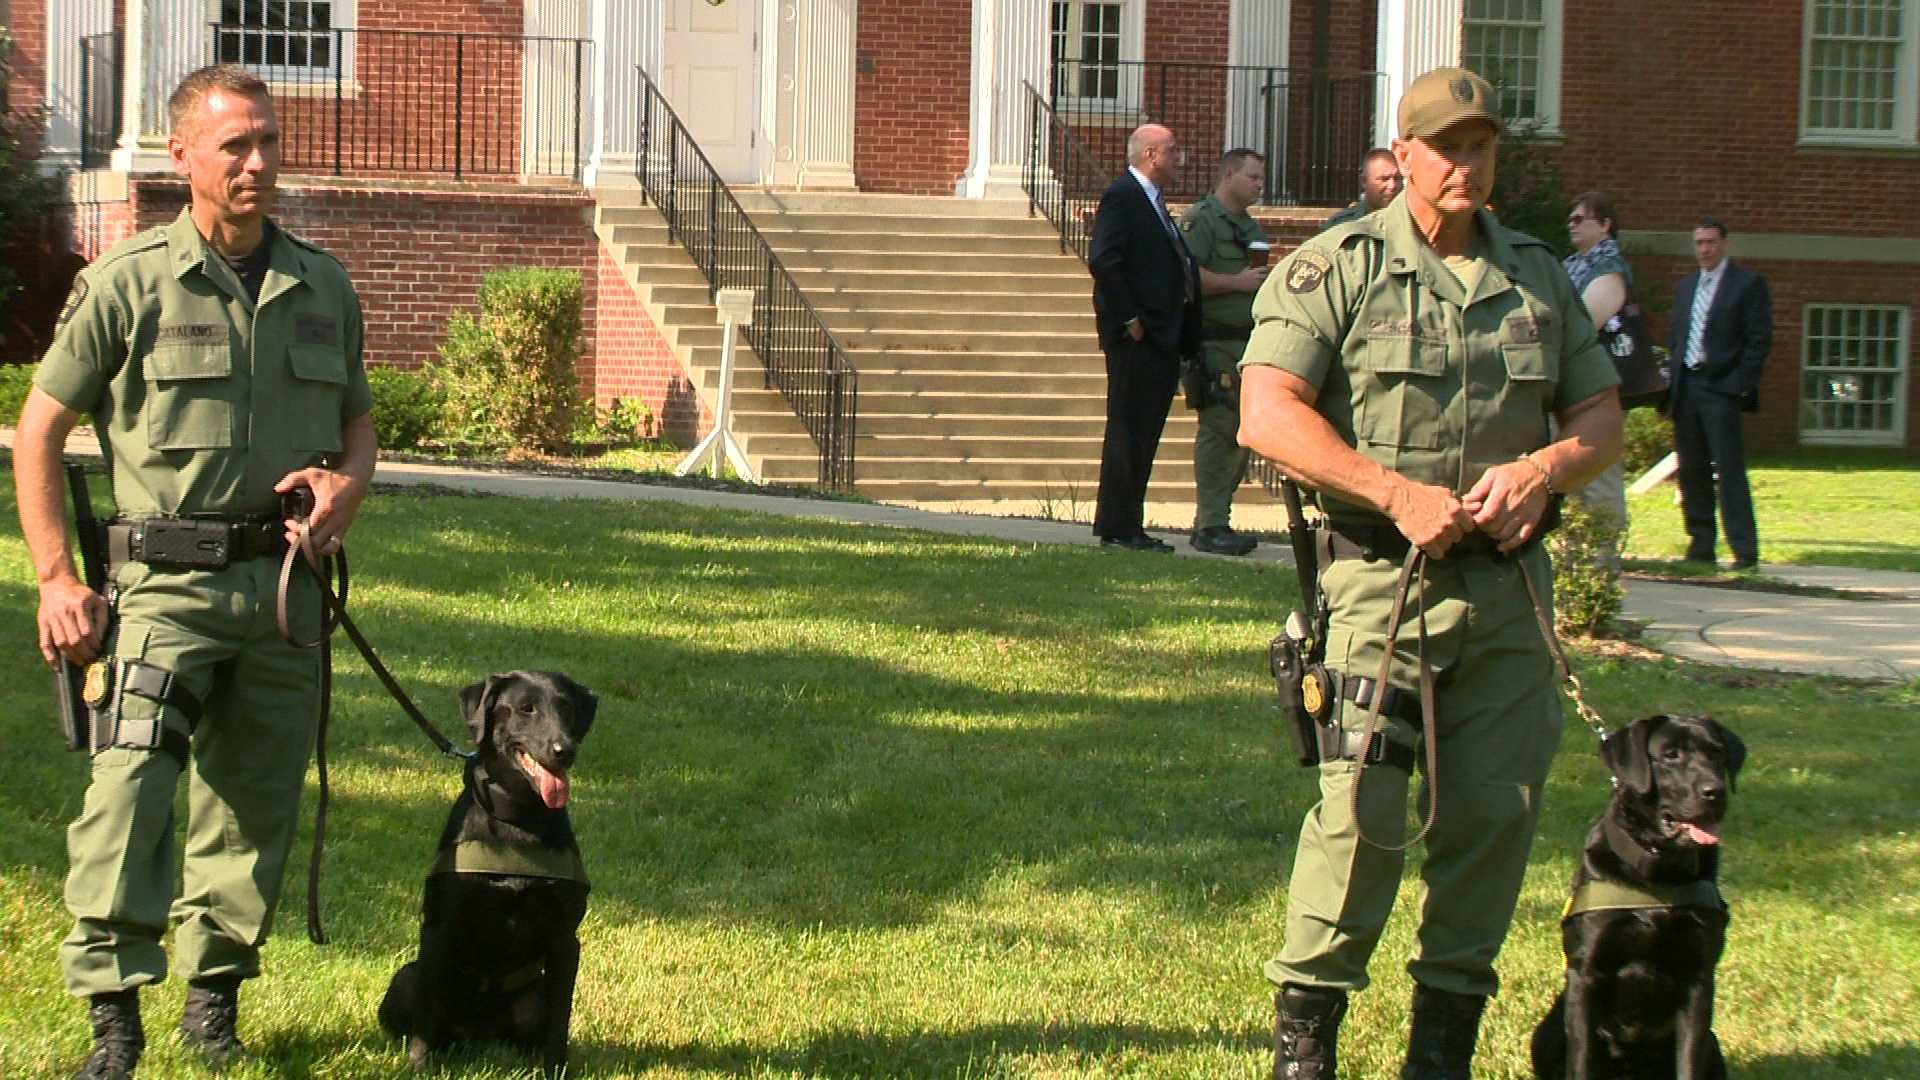 The Maryland State Police graduates four K-9 teams specifically trained to detect explosives carried by people.